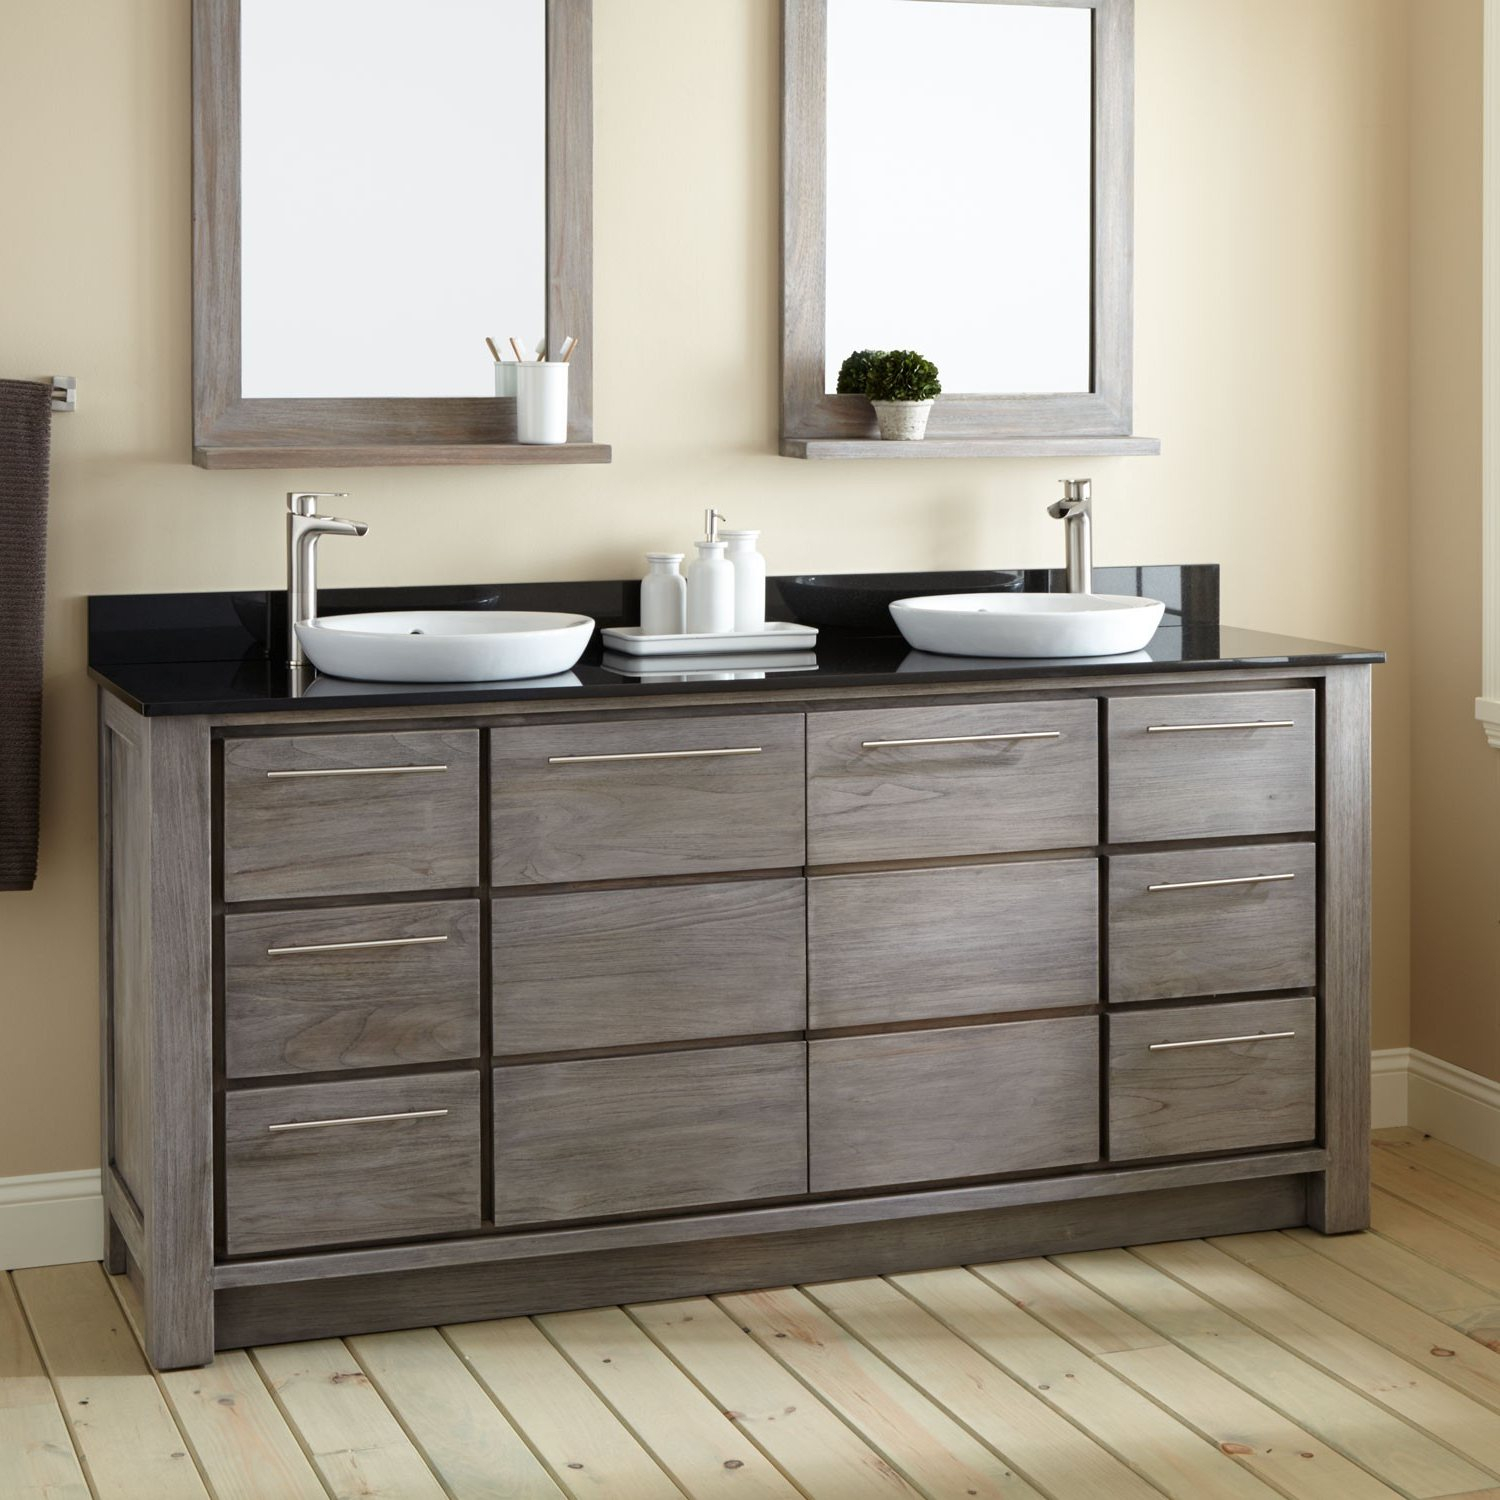 Modern Bathroom Sink : Double Sink Bathroom Vanity Bathroom Double Sink for Review Bathroom Sink And Vanity